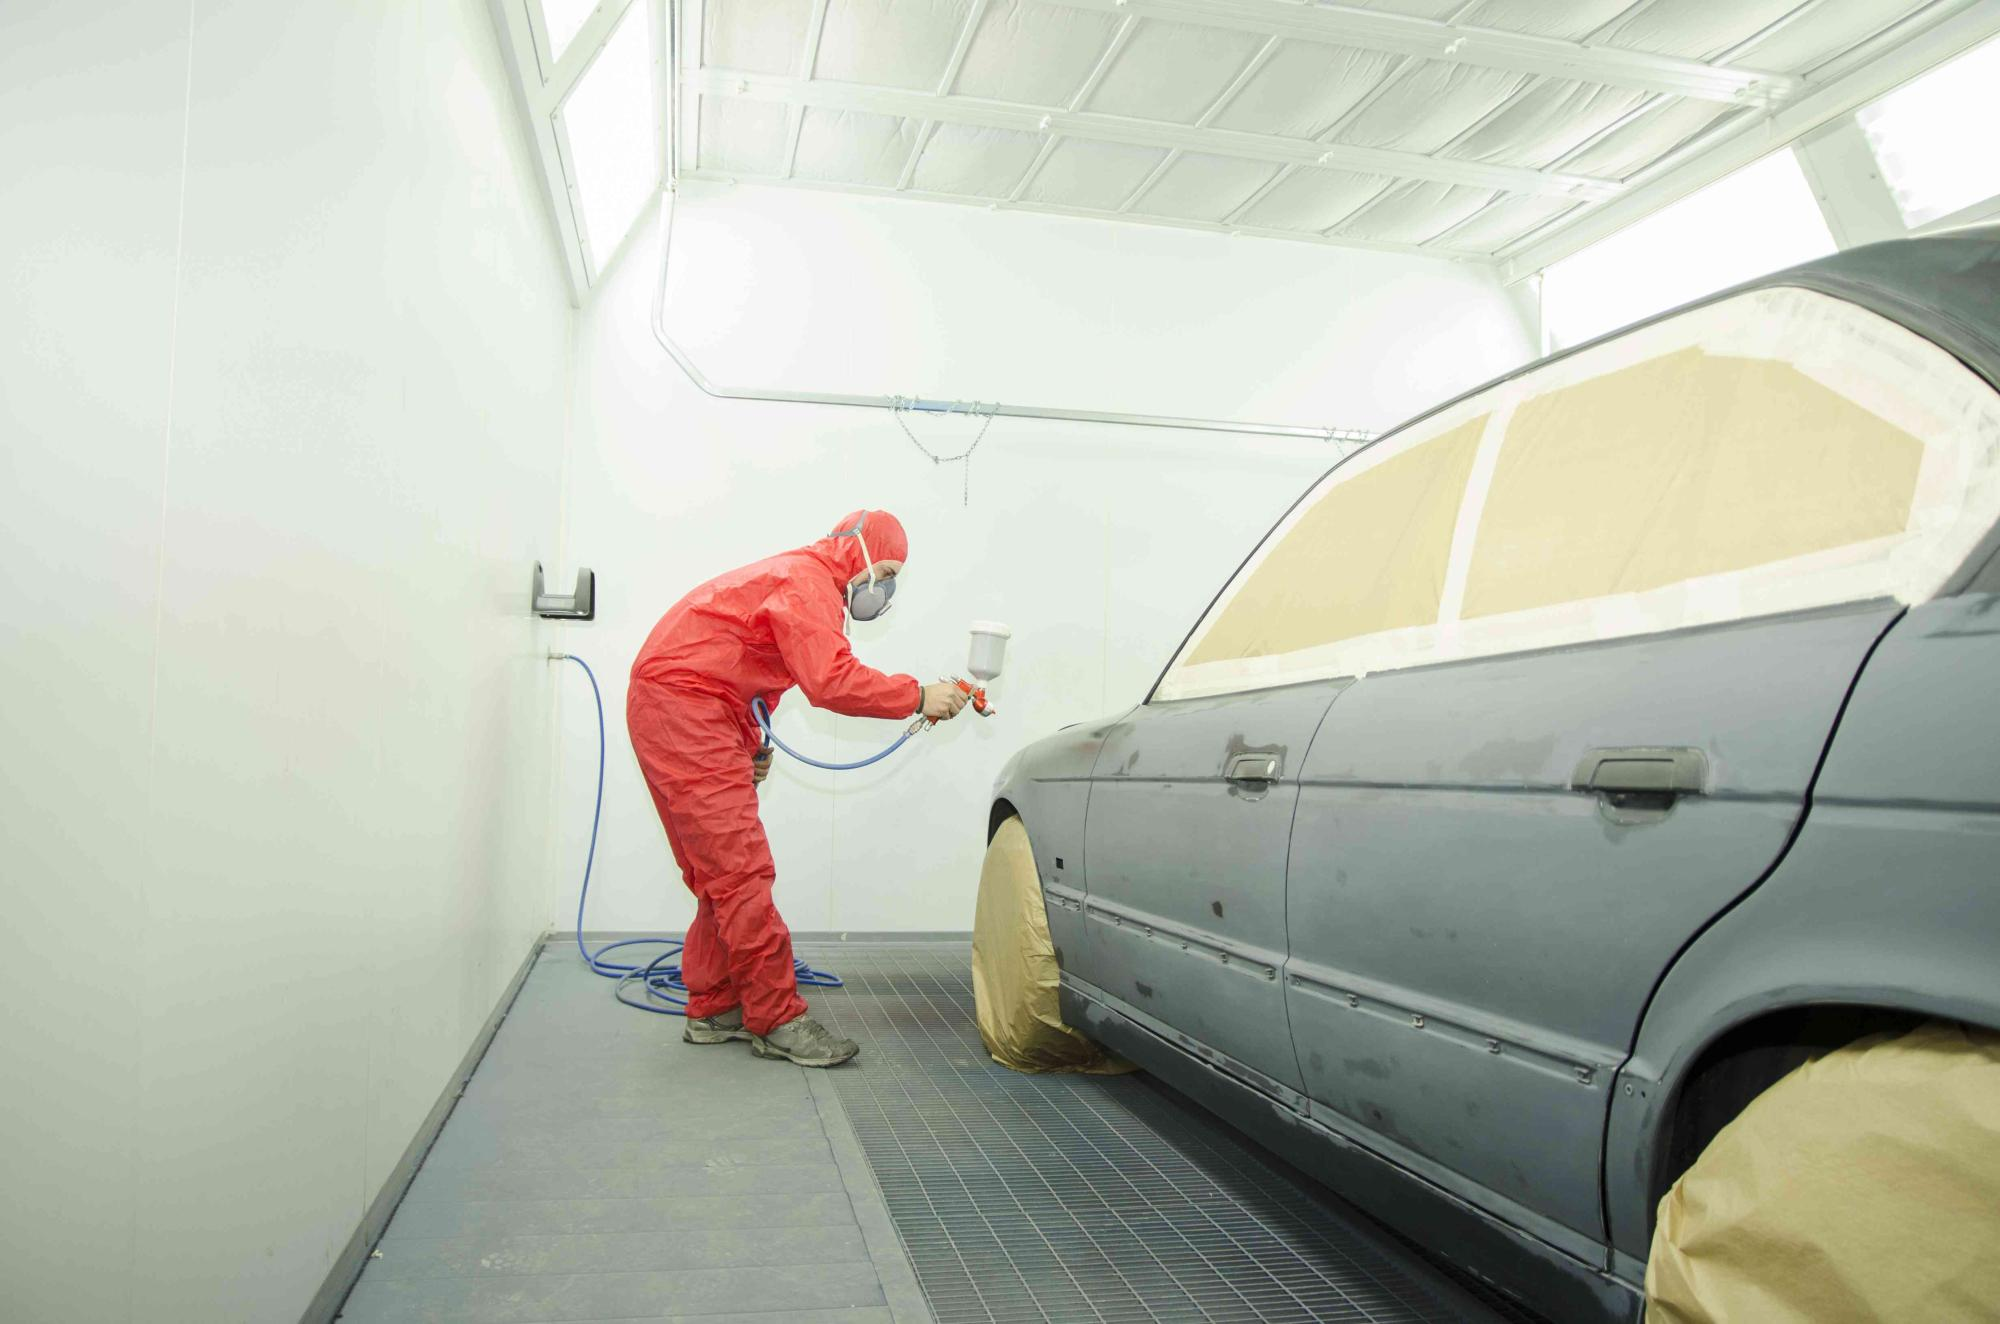 Kirby 39 s paint body your island body shop - Interior door spray painting service ...